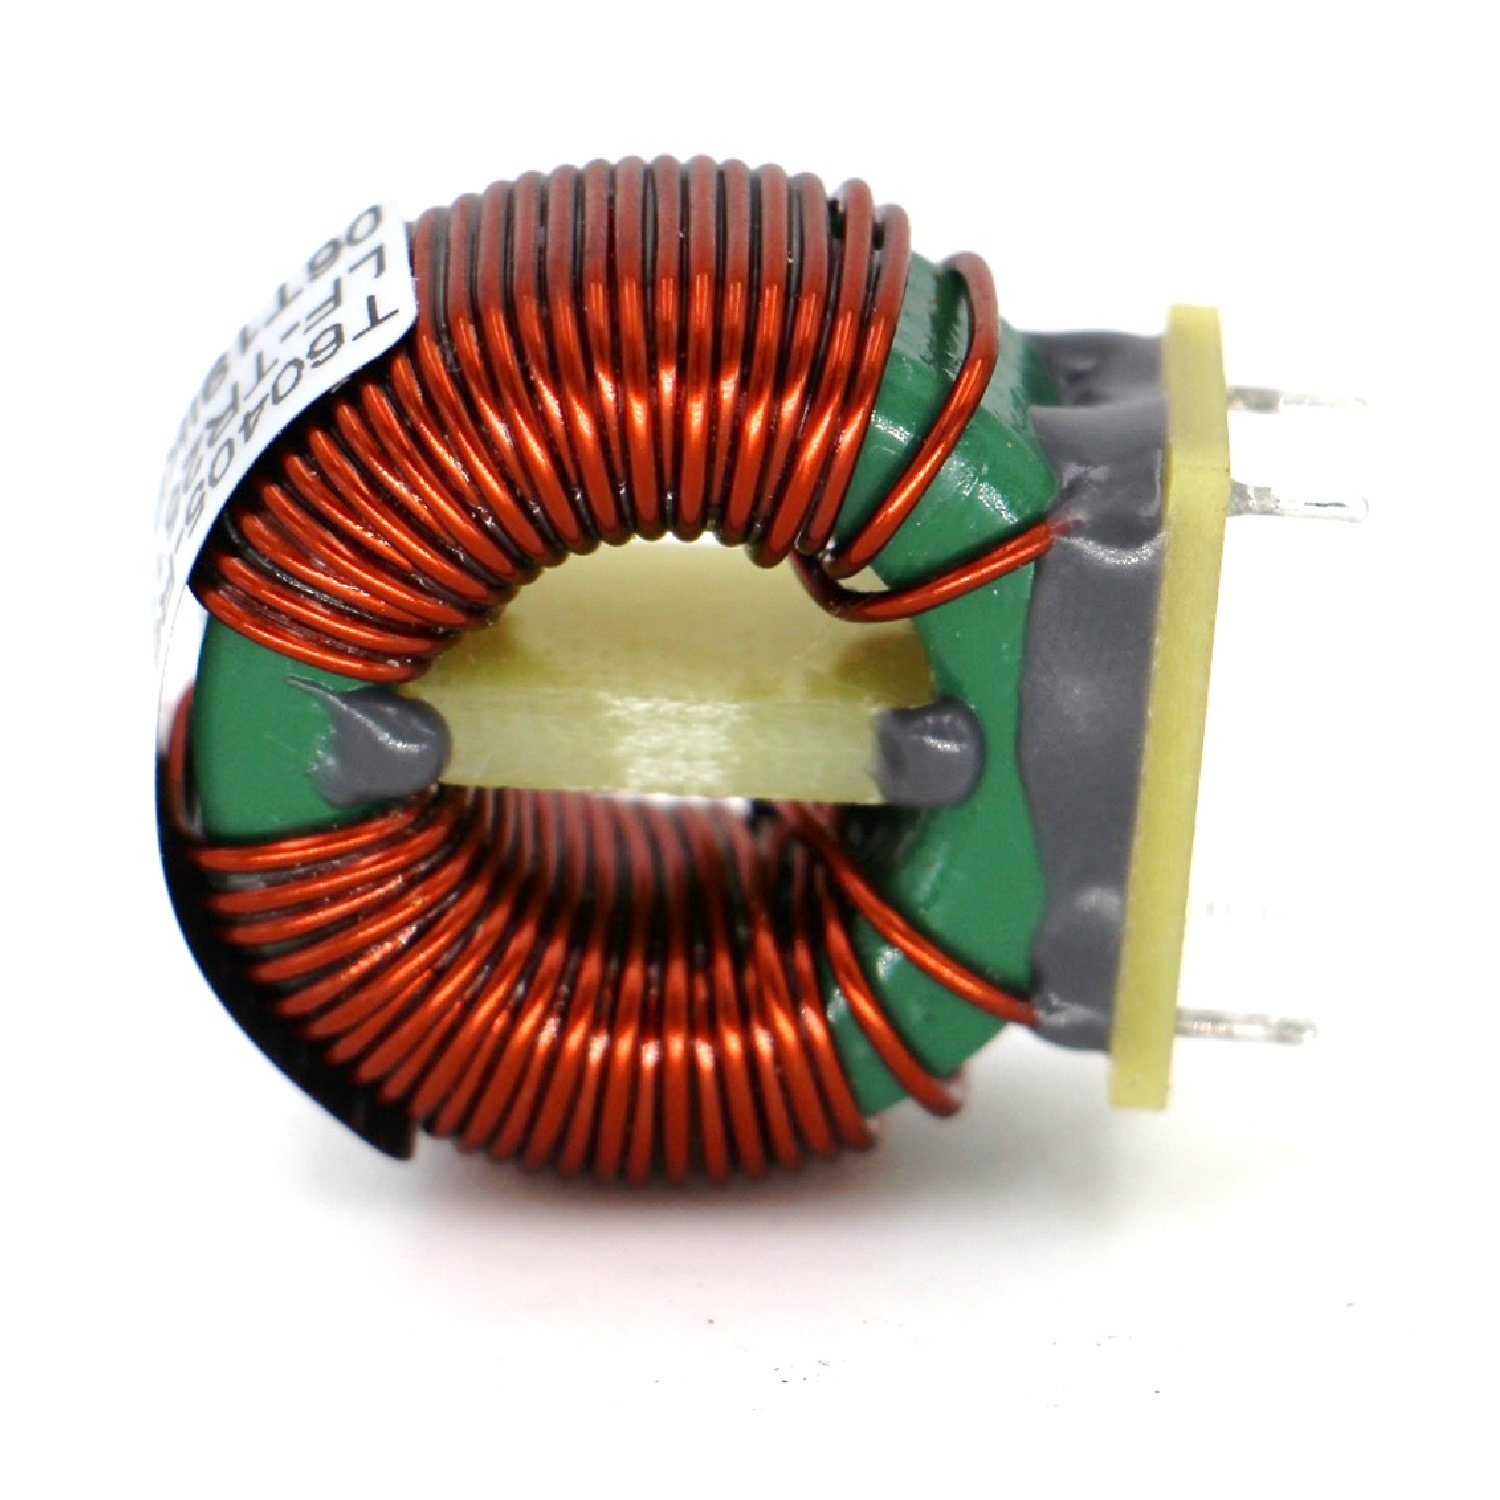 5x Inductor selection 180 UH µH Choke Coil-other values in the shop